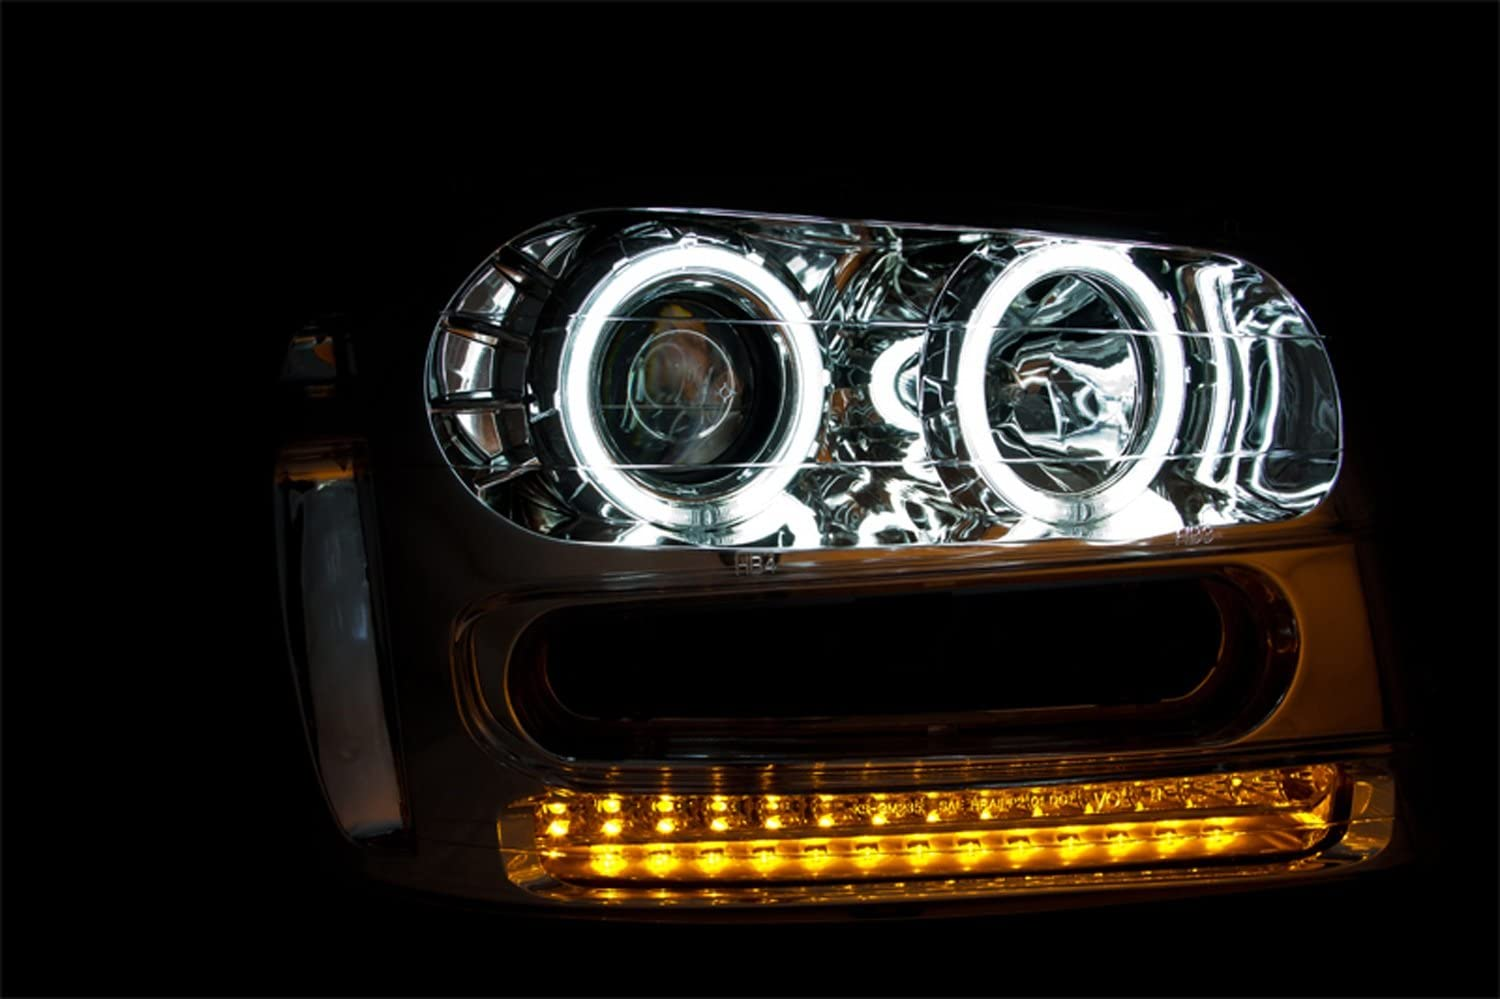 Anzo USA 111131 Chevrolet Trailblazer Chrome Projectors w//Halos Headlight Assembly Sold in Pairs